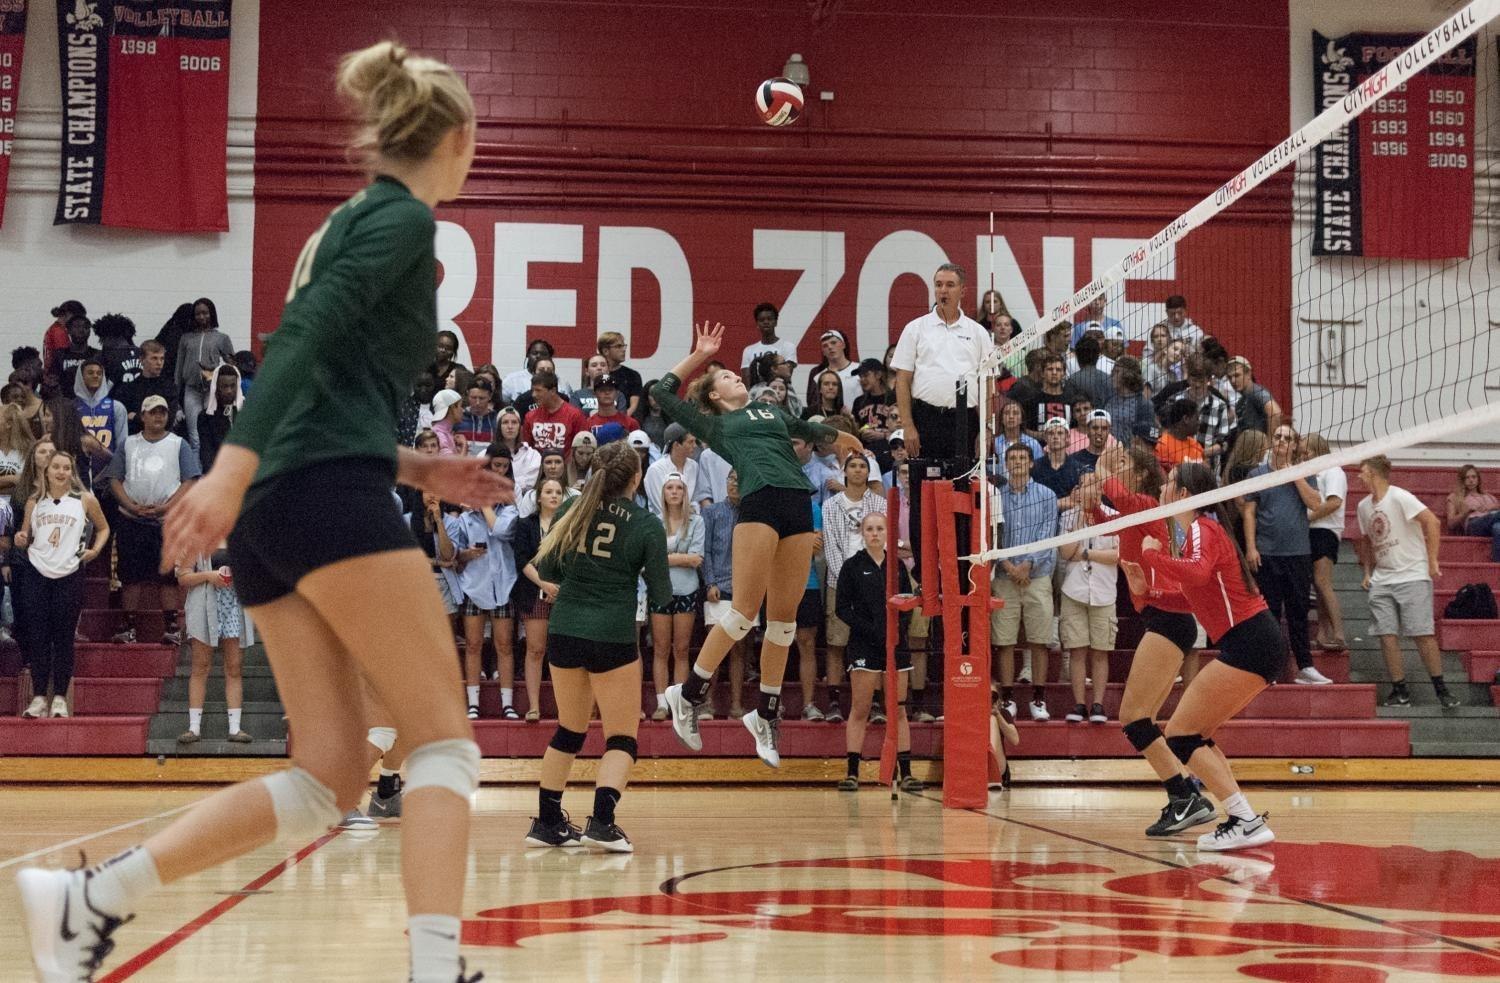 Emily Burch '18 prepares to spike the ball in the third set of the varsity game against City on Sept. 5.